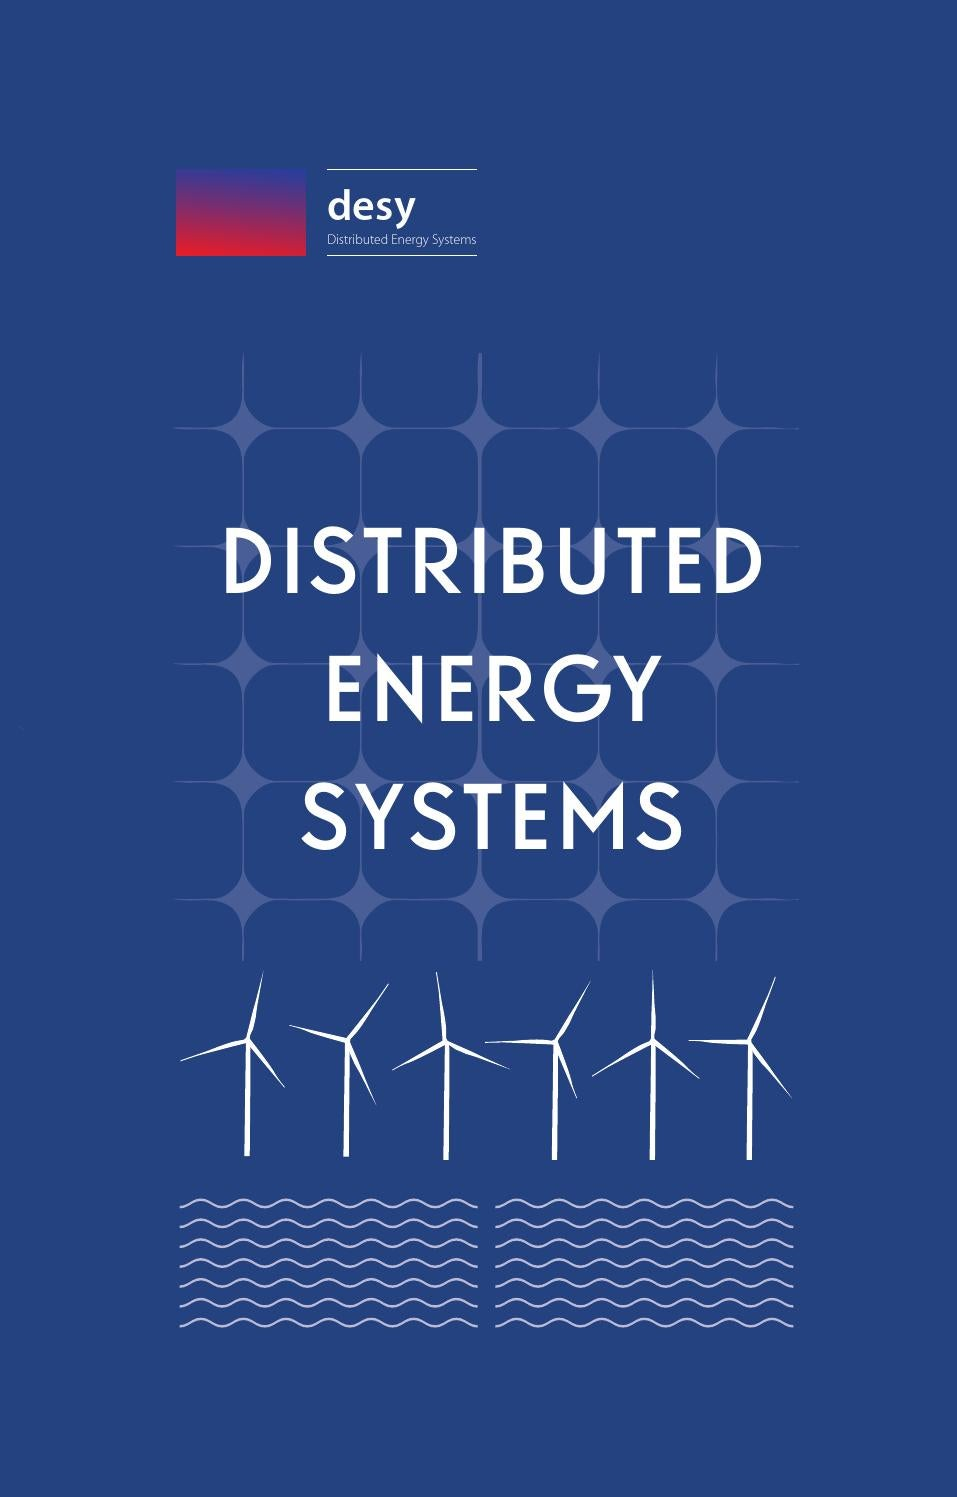 Distributed Energy Systems Final Report By Cleen Ltd Issuu Bsa Positive Ground Wiring Diagram In Addition Quadratic Equations